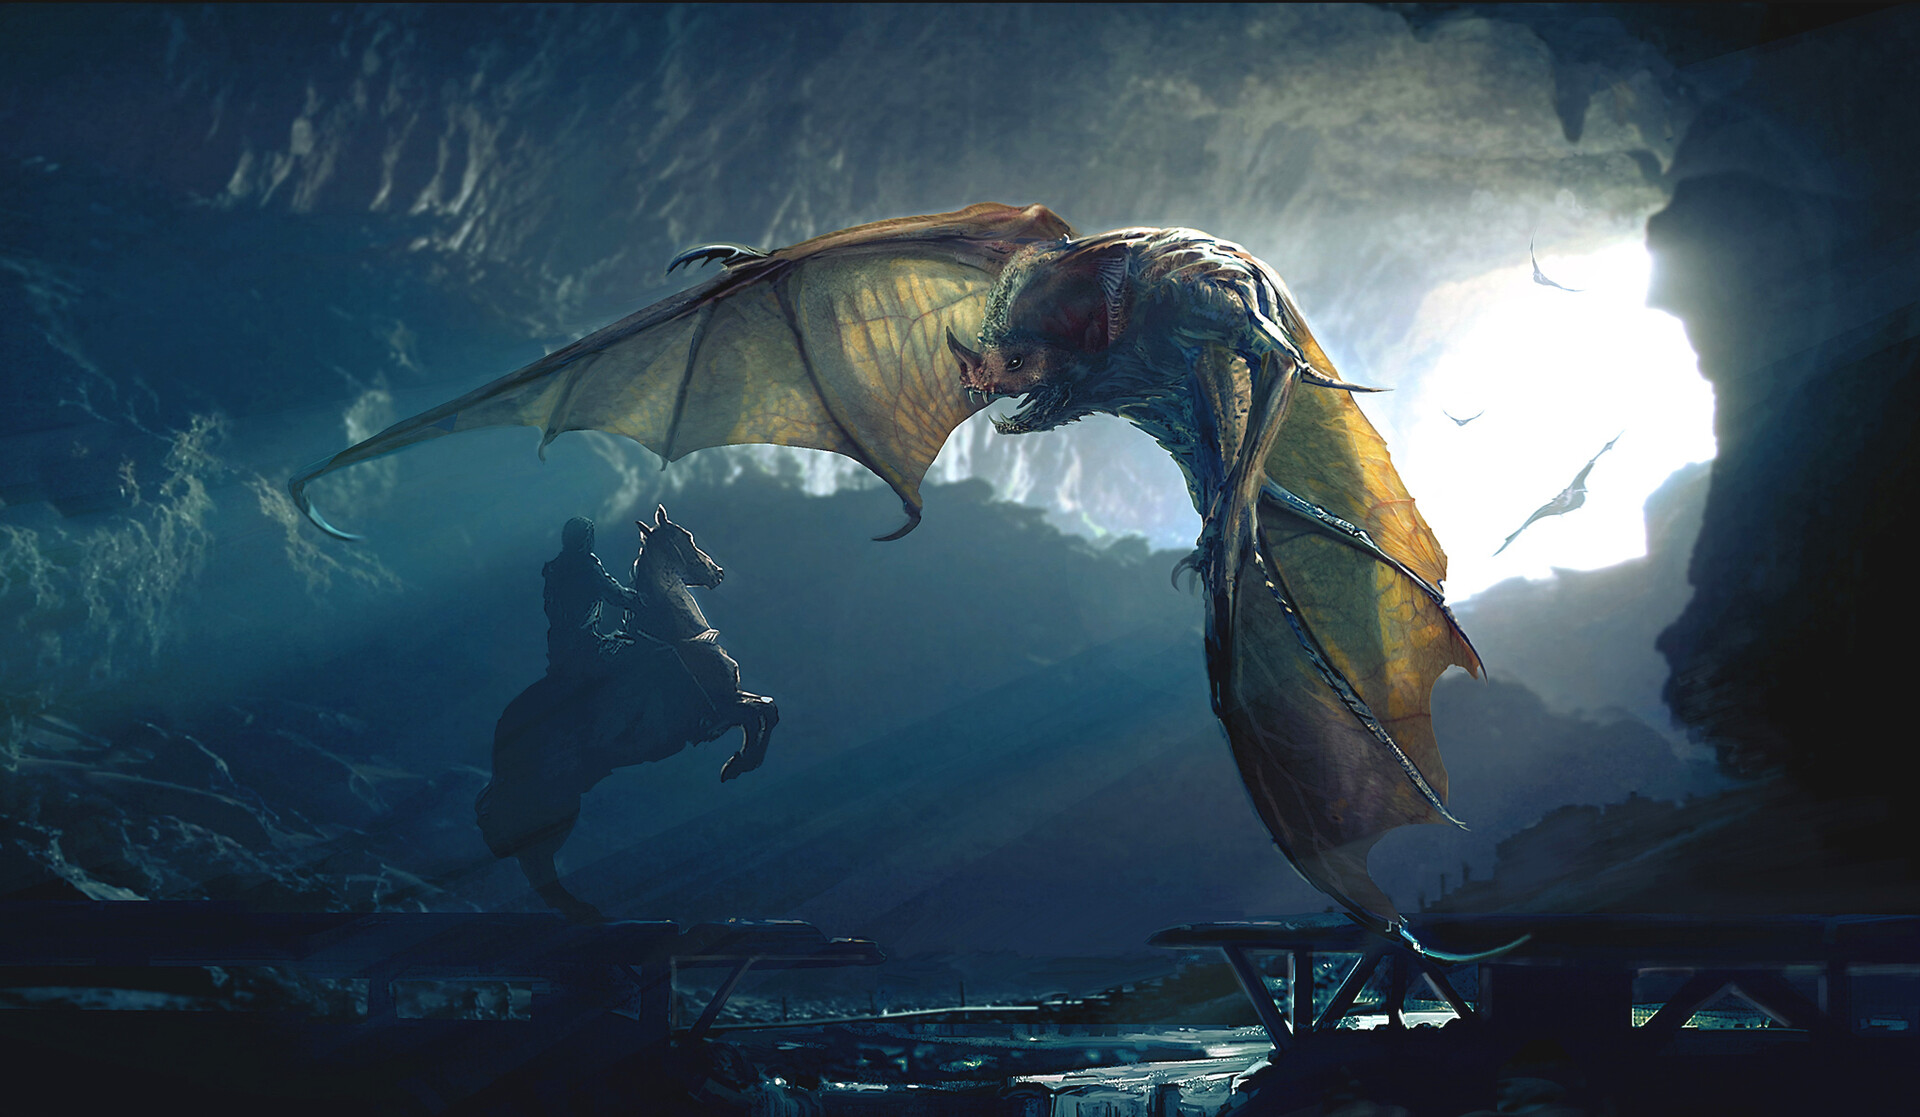 Giant Bat concept for King Arthur 